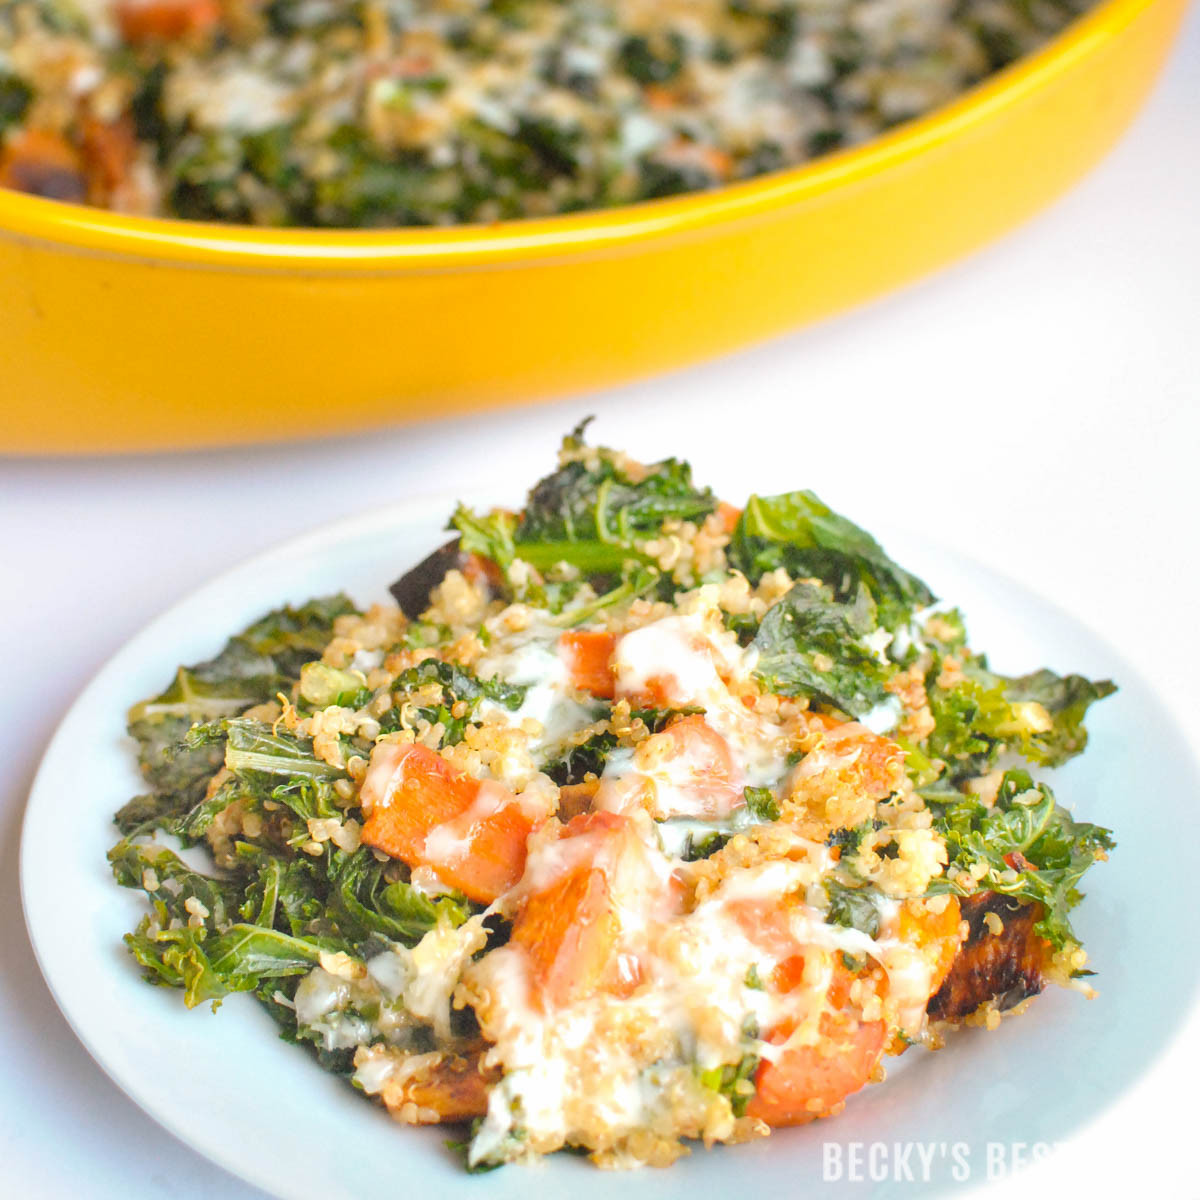 Healthy Vegetable Casserole Recipes  Kale & Roasted Ve able Quinoa Casserole